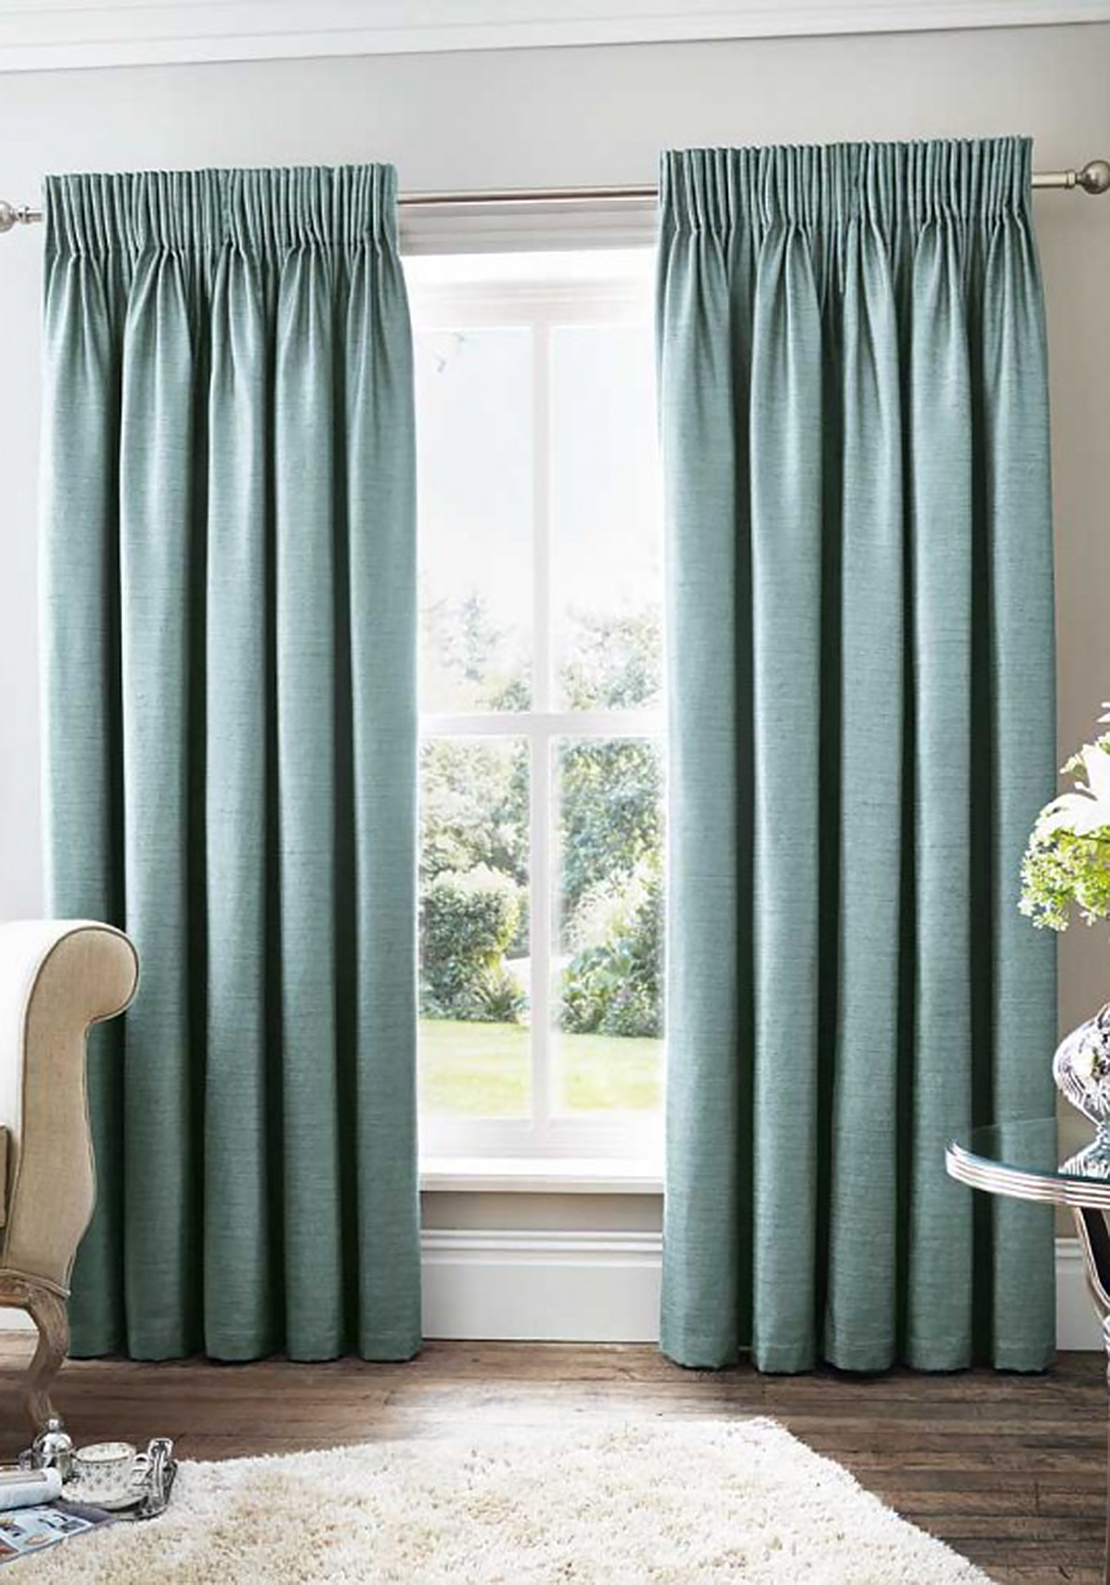 Curtina Rimini Fully Lined Curtains, Teal